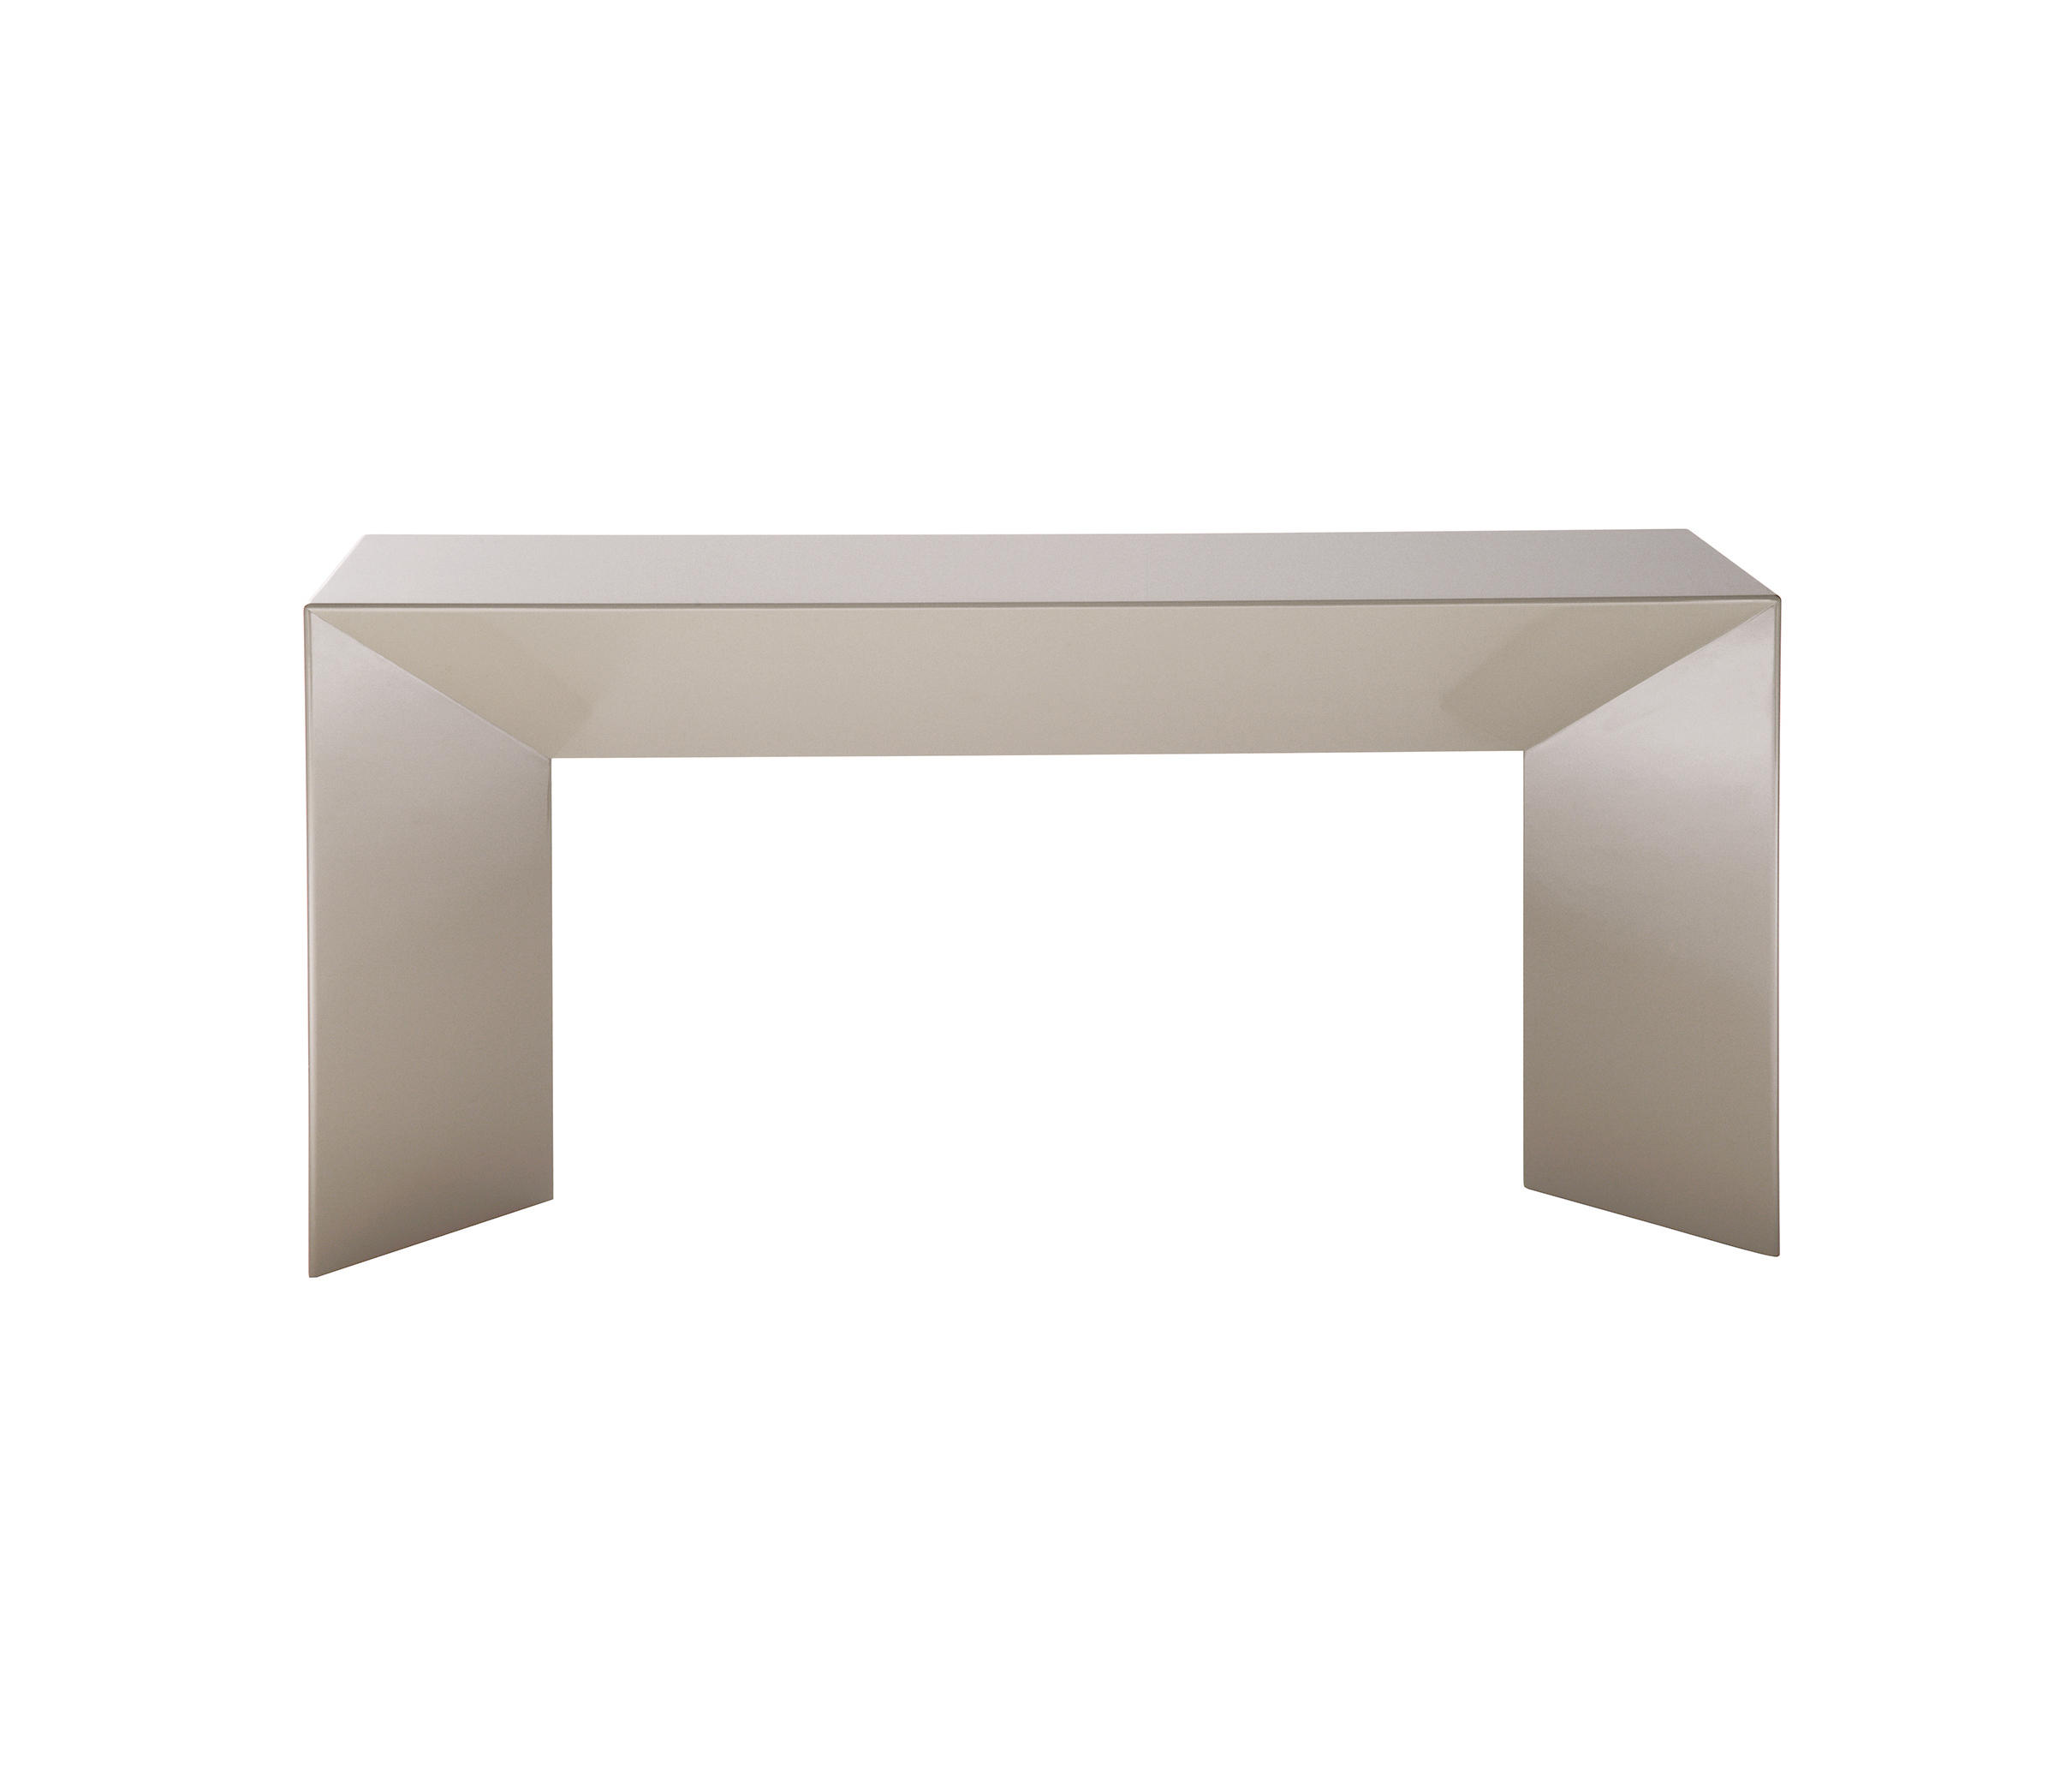 Arch console console tables from hc28 architonic arch console by hc28 console tables geotapseo Image collections